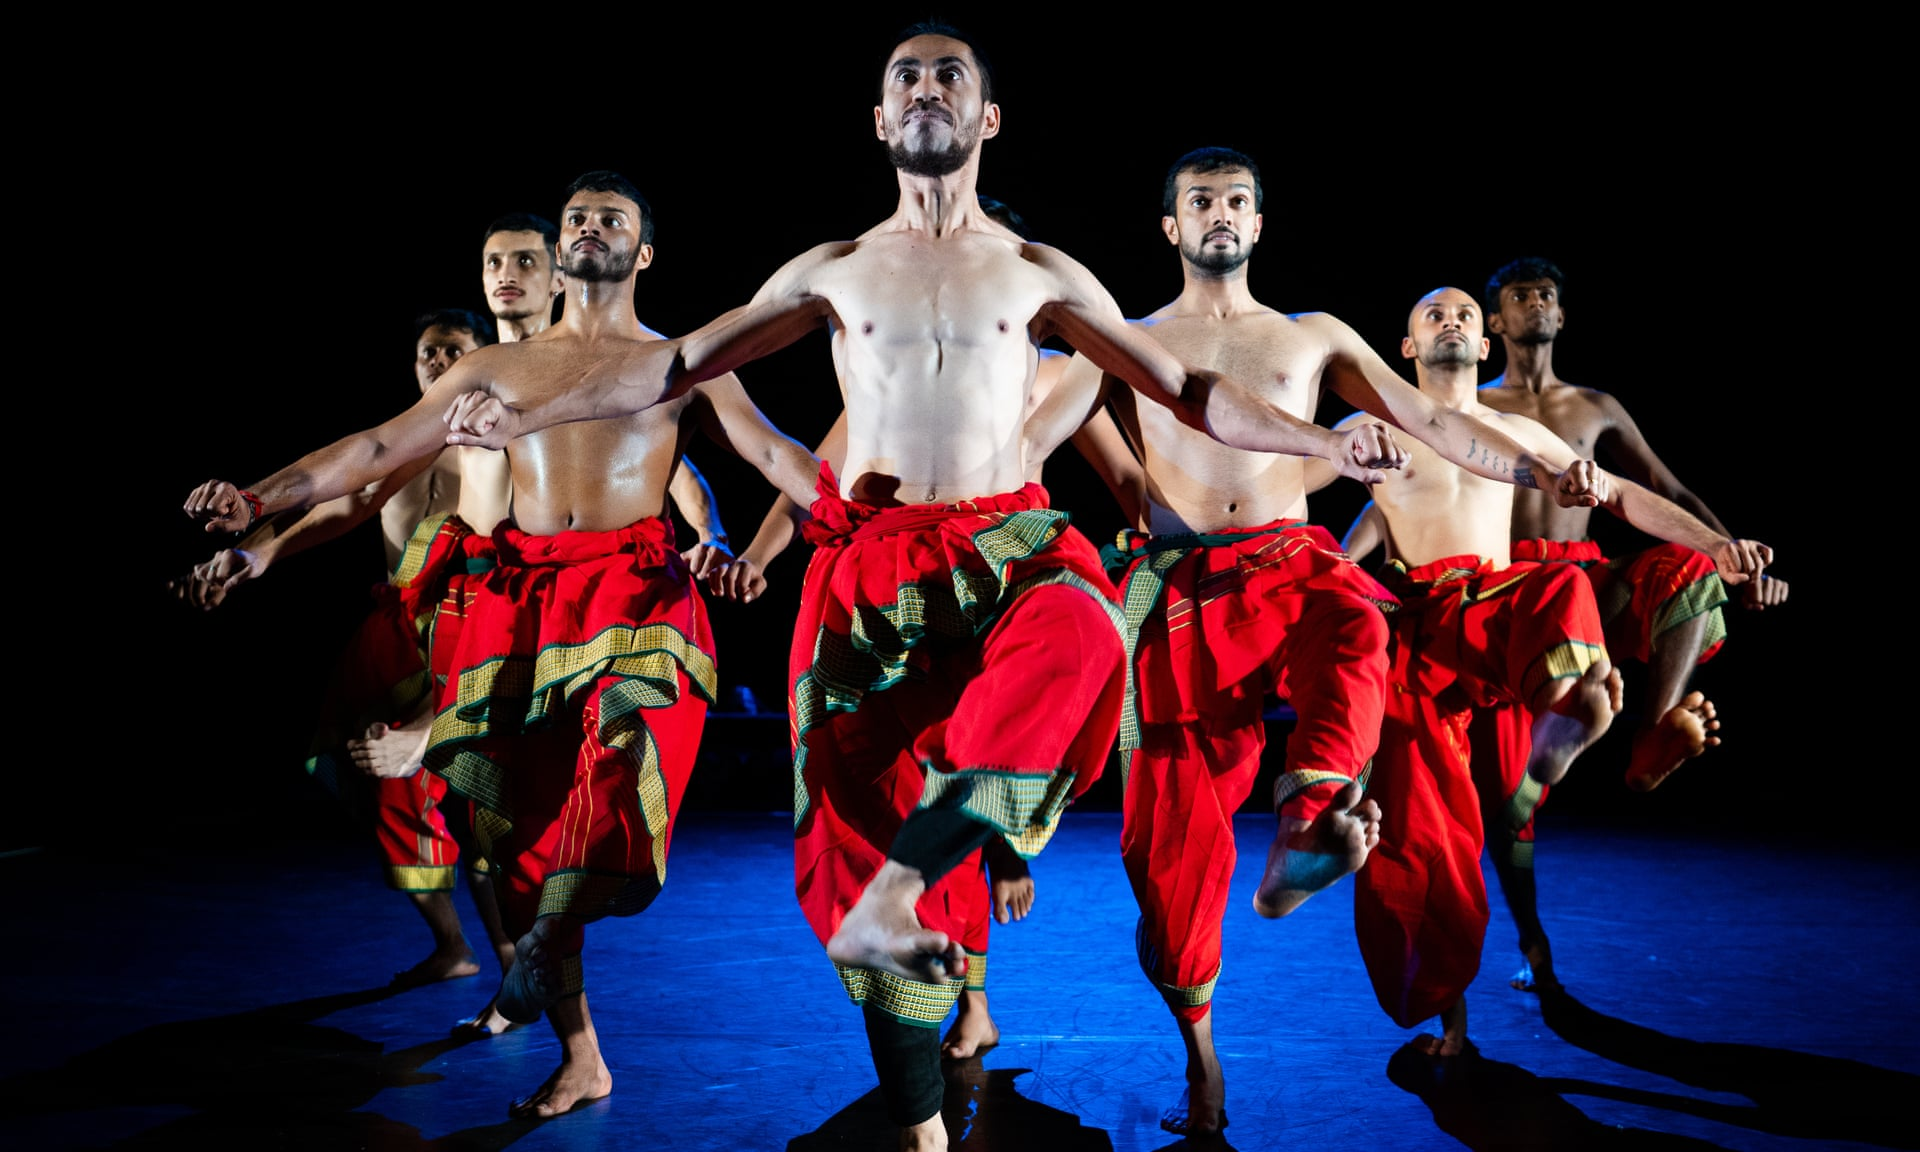 Dancers from Malaysia's Temple of Fine Arts, in choreography by Mavin Khoo. Photo: Rehmat Rayatt